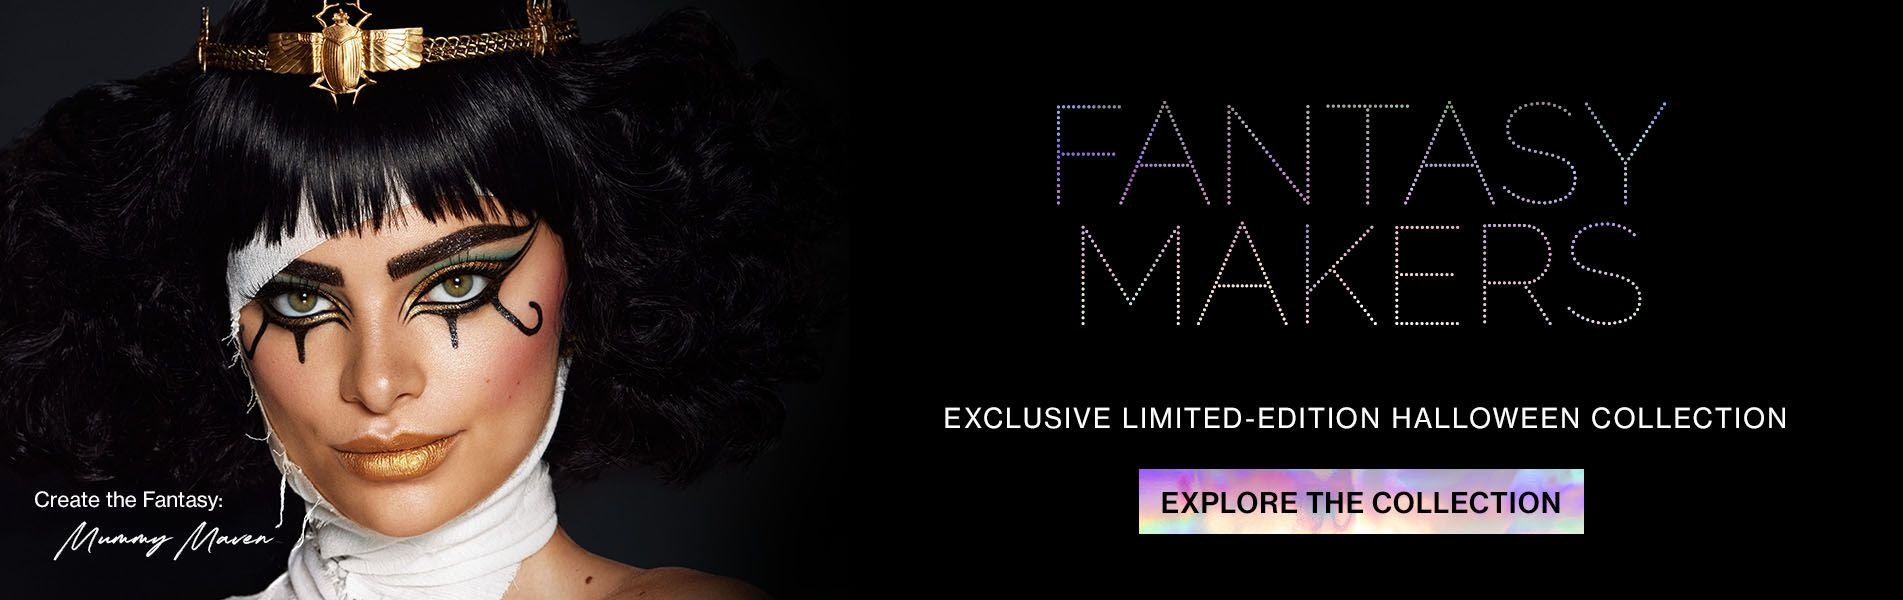 wet n wild | Fantasy Makers Exclusive Limited-Edition Halloween Collection | Mummy Halloween Costume | EXPLORE THE COLLECTION